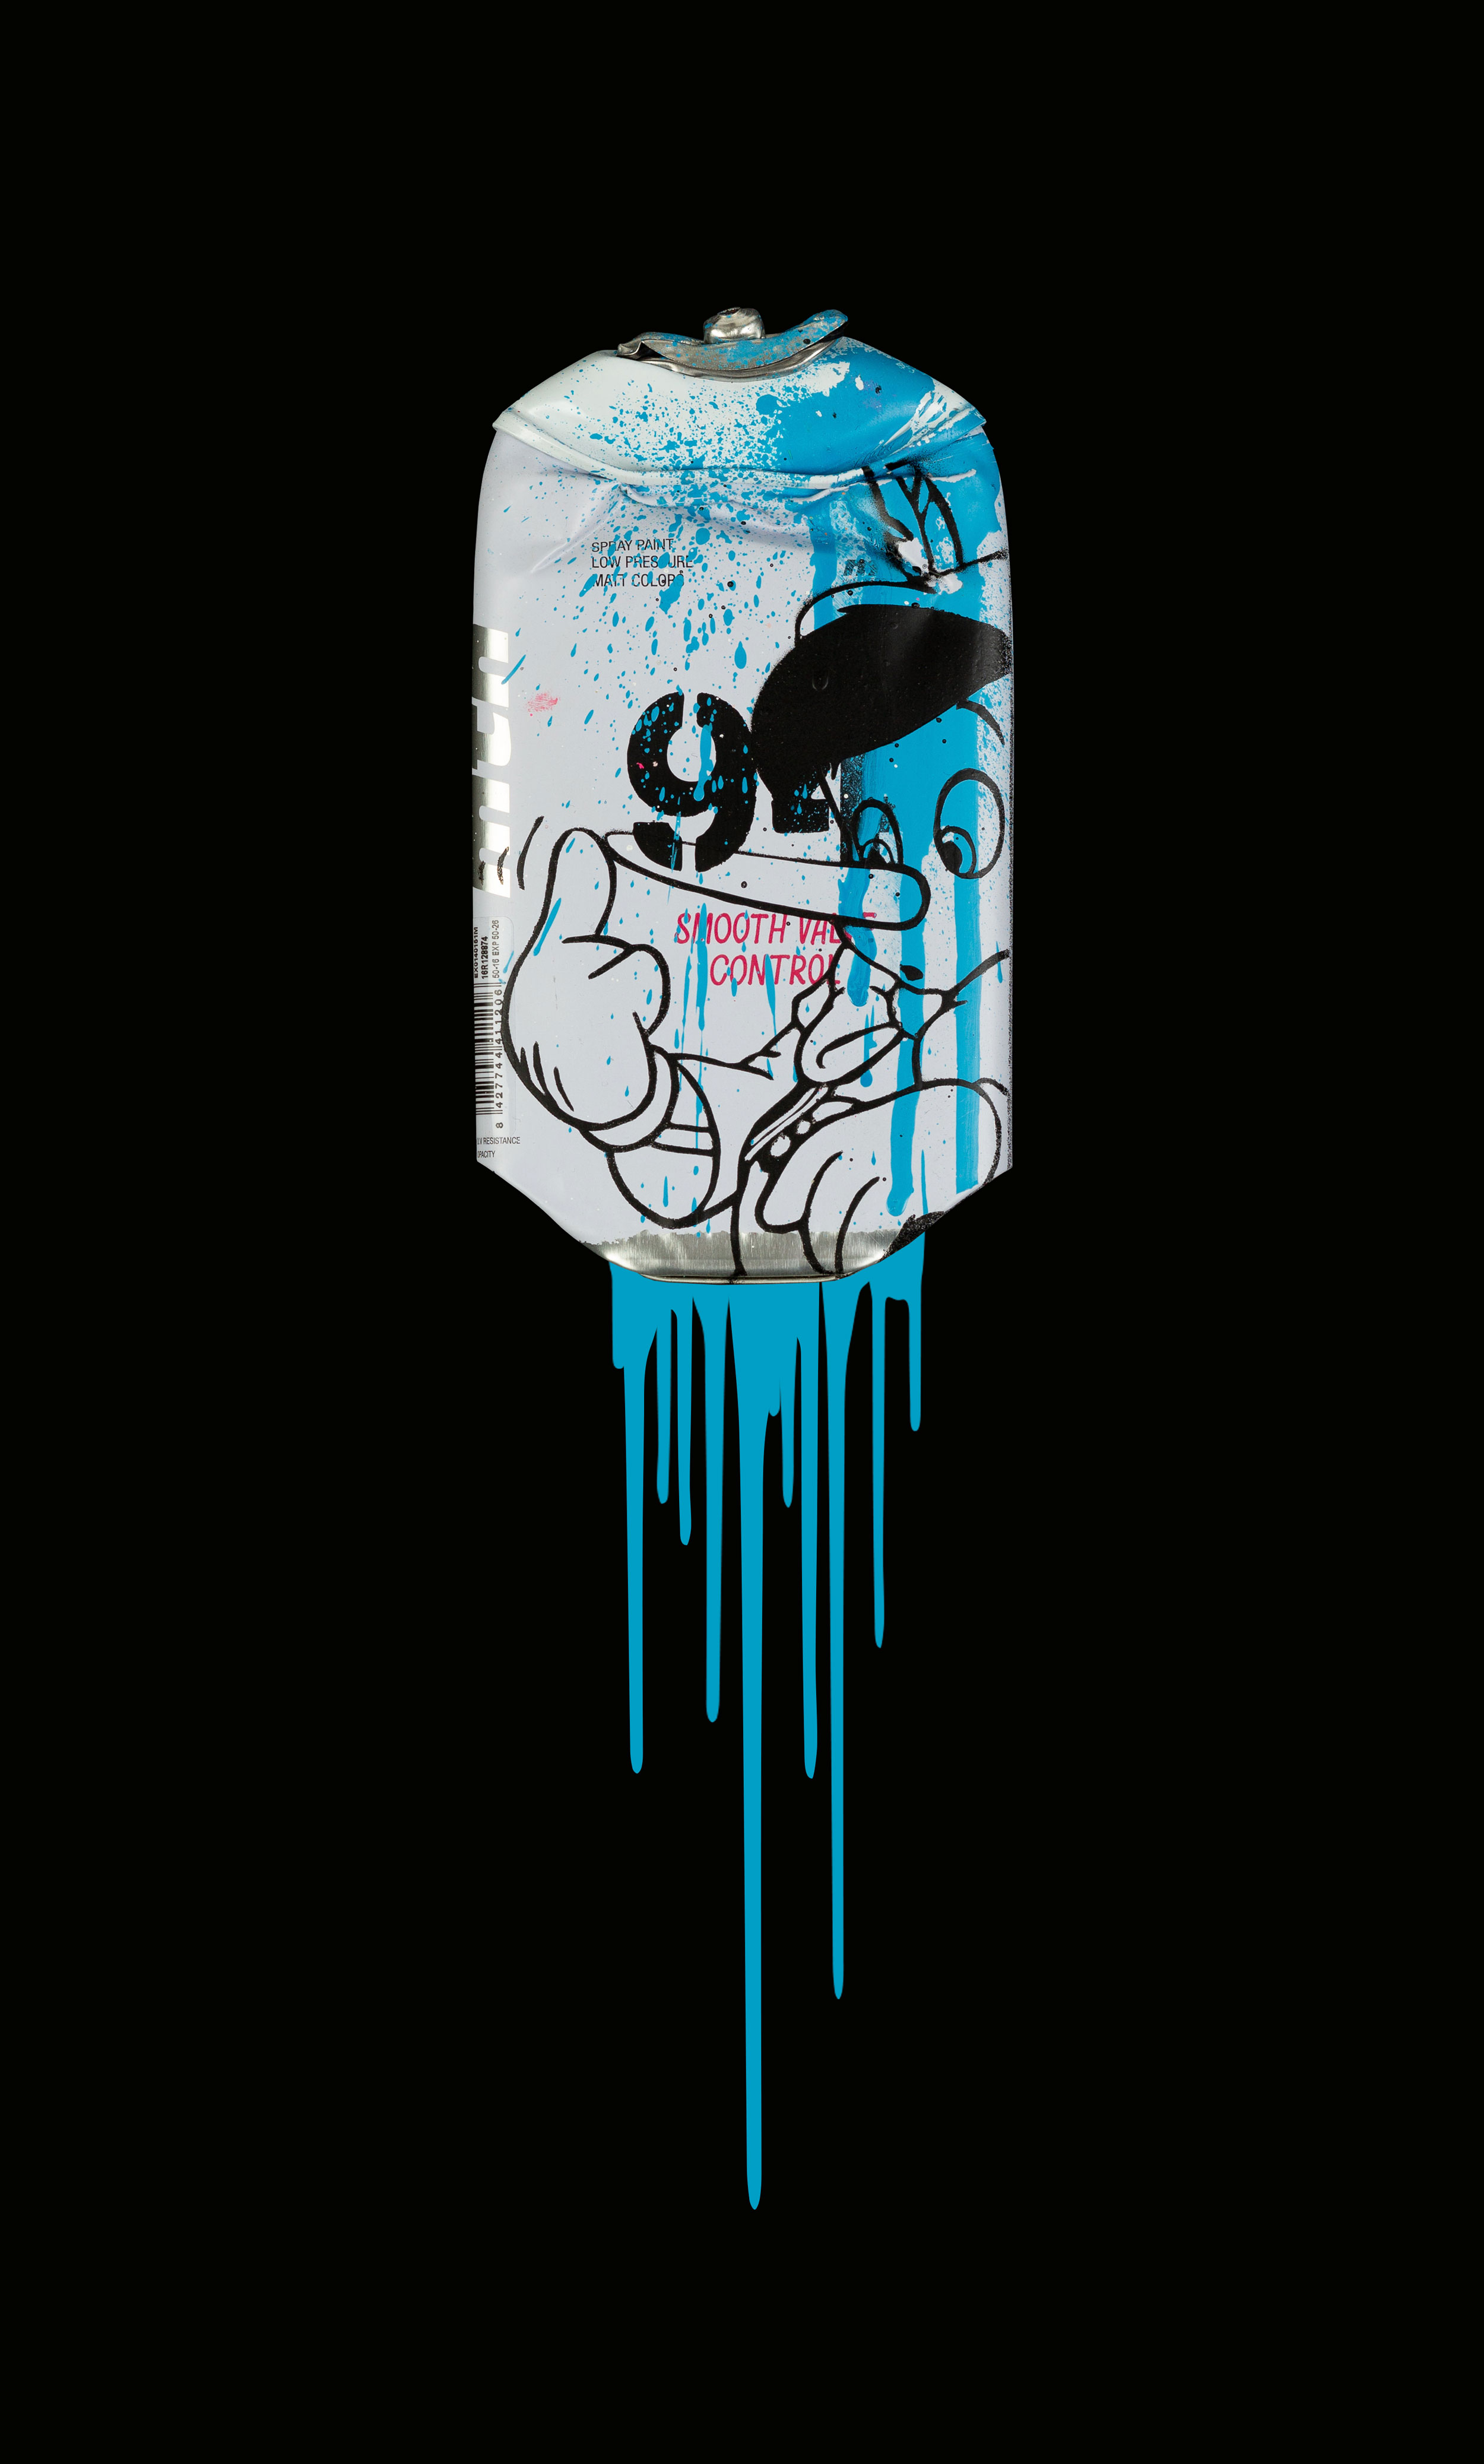 Pinocchio-Montana-94-Freedom-Blue-Acrylic-Spray-paint-on-crushed-spray-can-in-museum-perspex-box-frame-27.5cm-x-45cm-x-5.5cm-£725.jpg